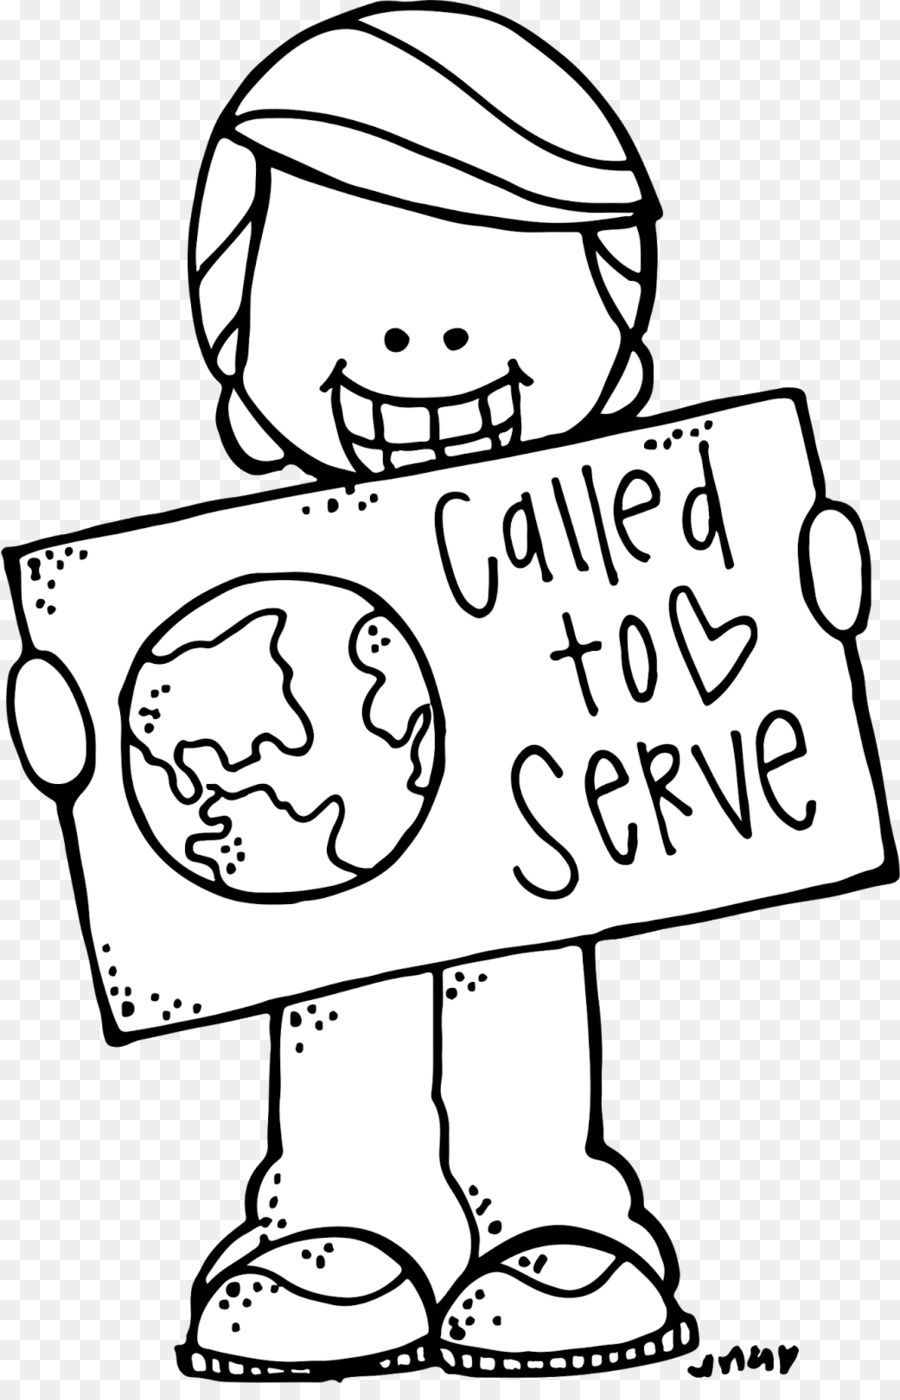 Missionary clipart black and white, Missionary black and ...